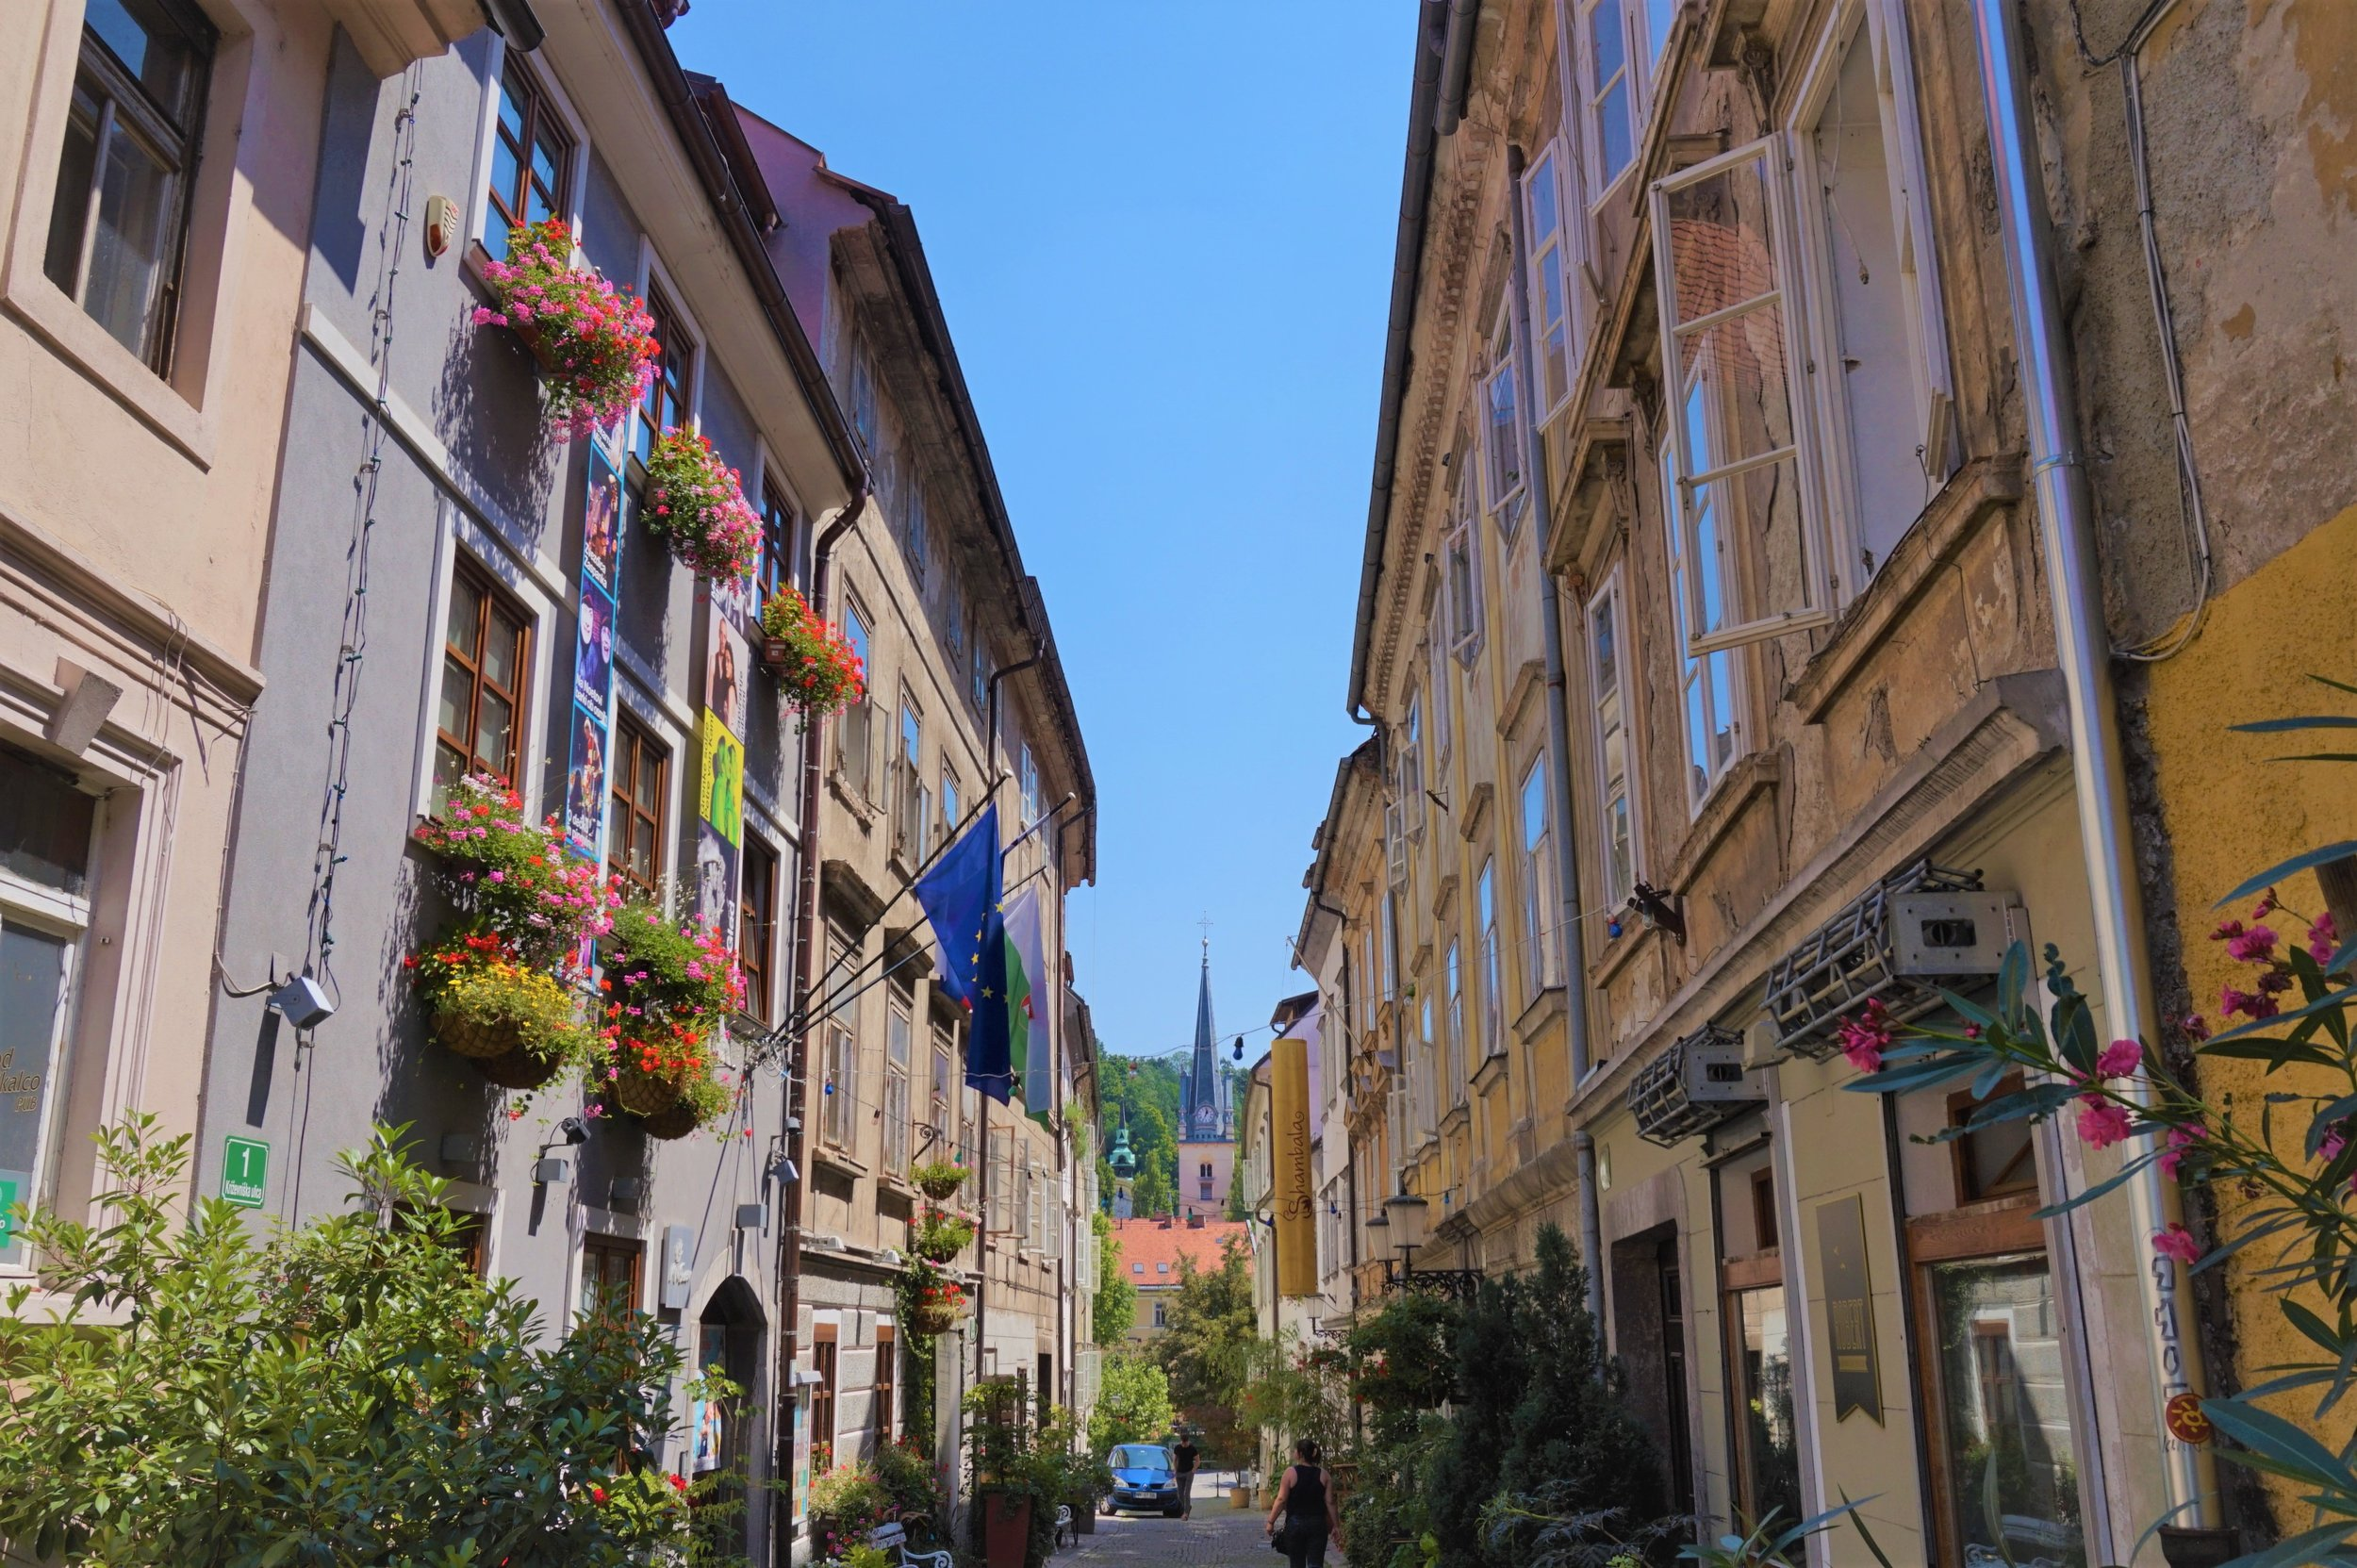 Old town Ljubljana, the perfect place for a wander and a Ljubljana must-see